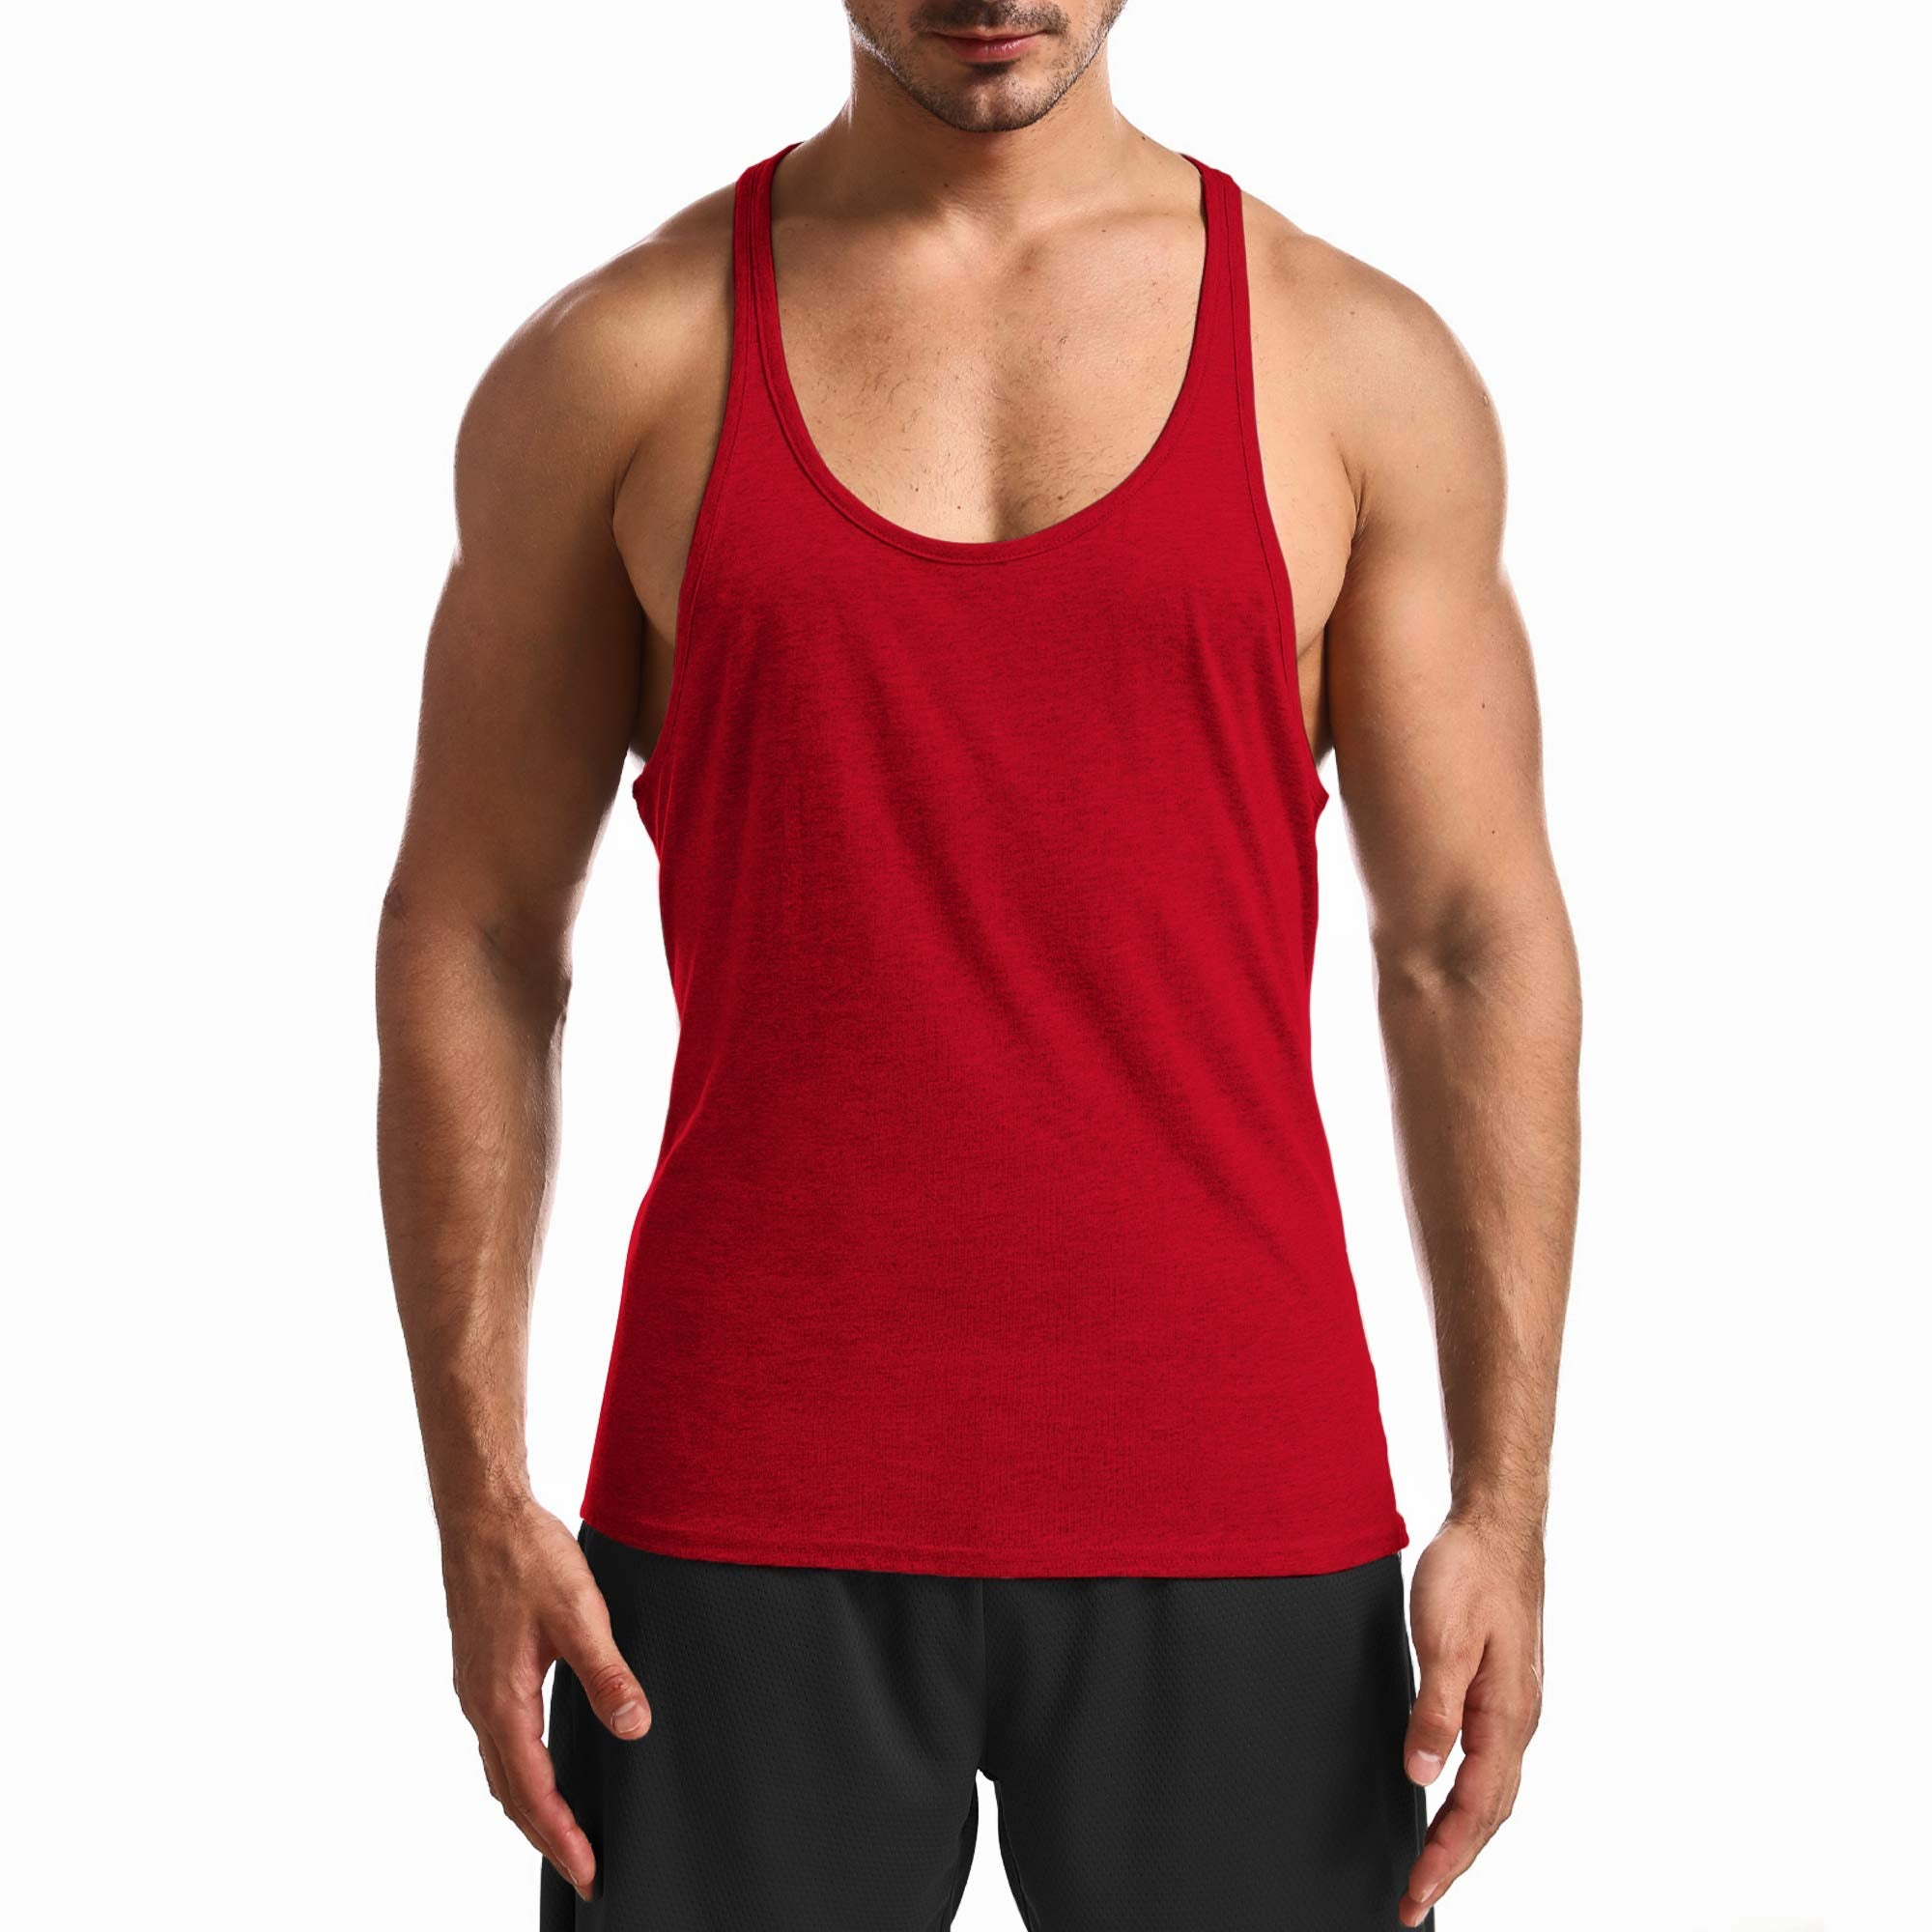 Racerback Workout Tank Top For Men